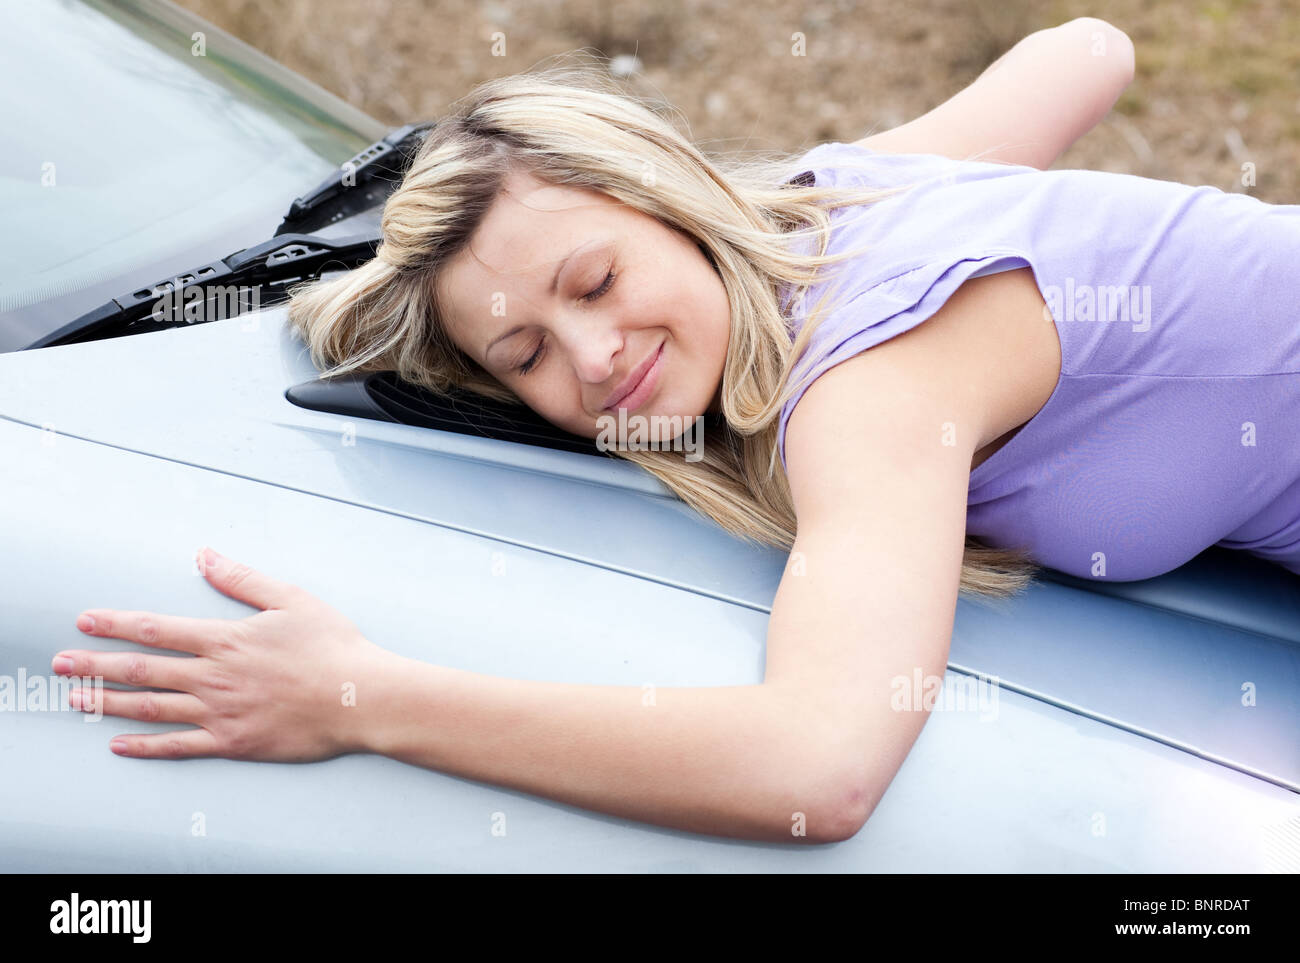 Cheerful conductrice huging sa nouvelle voiture Photo Stock